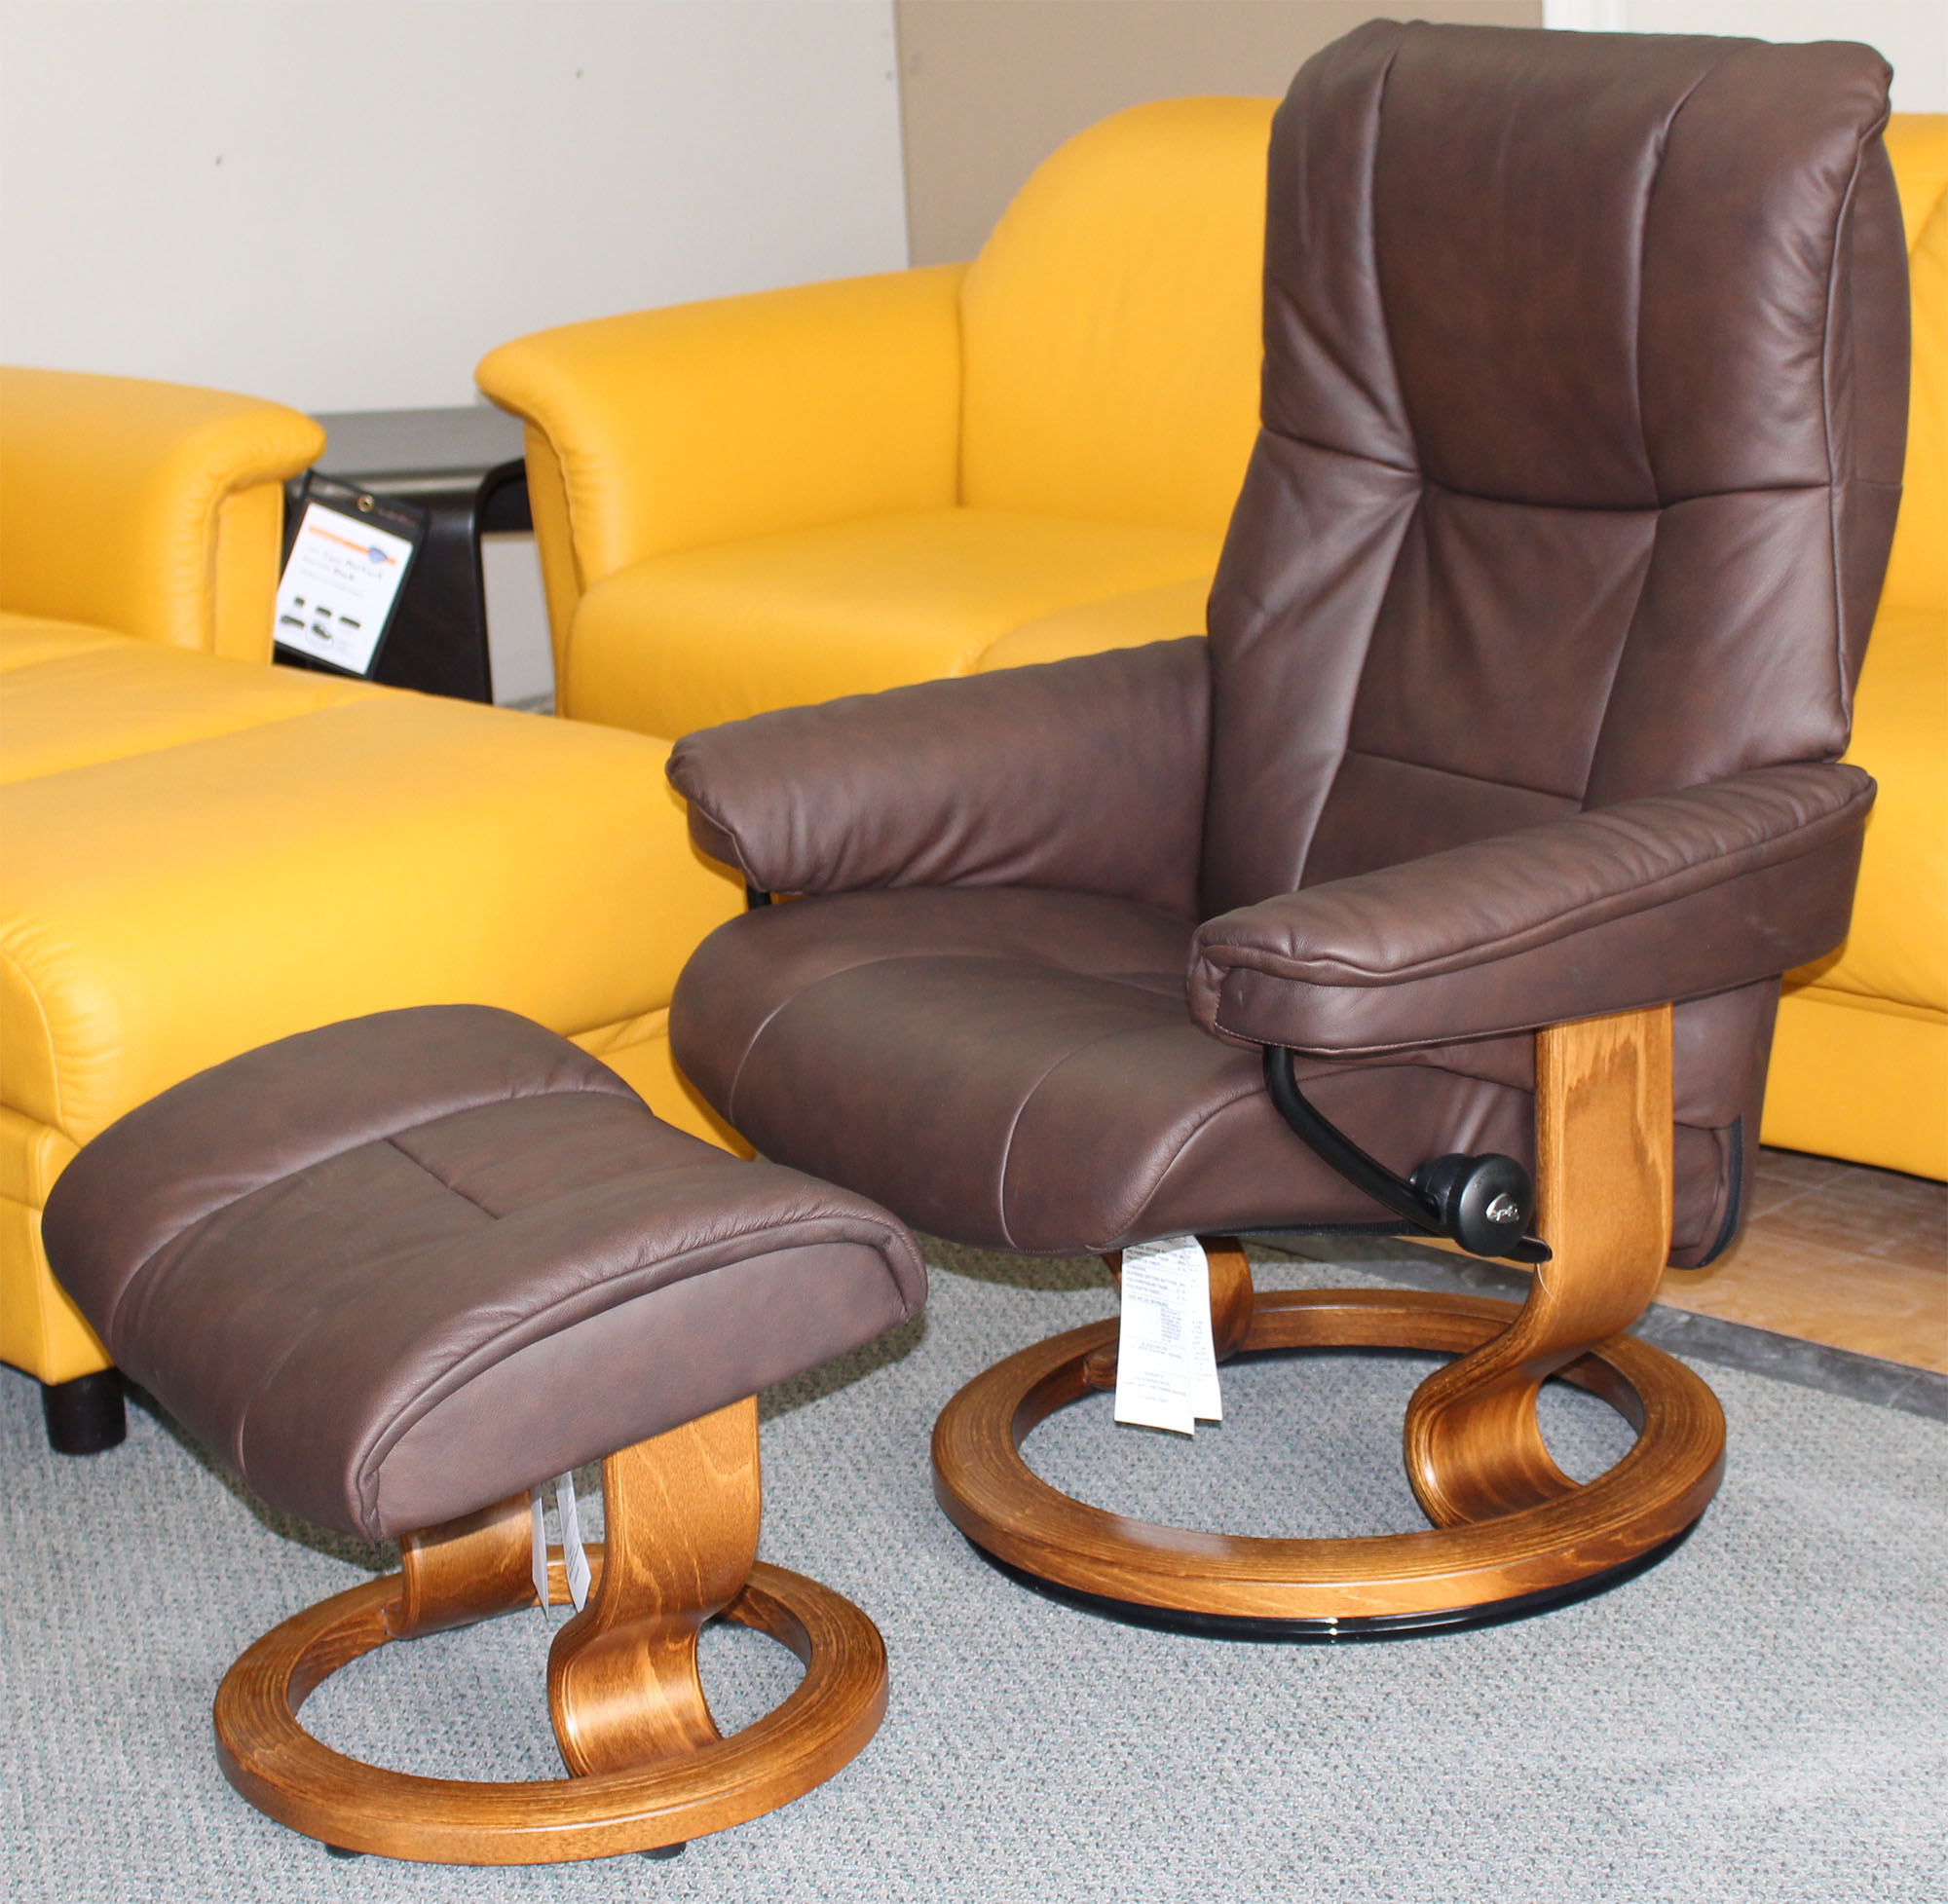 Stressless Chelsea Small Mayfair Paloma Chocolate Leather by Ekornes & Stressless Chelsea Small Mayfair Paloma Chocolate Leather Recliner ... islam-shia.org